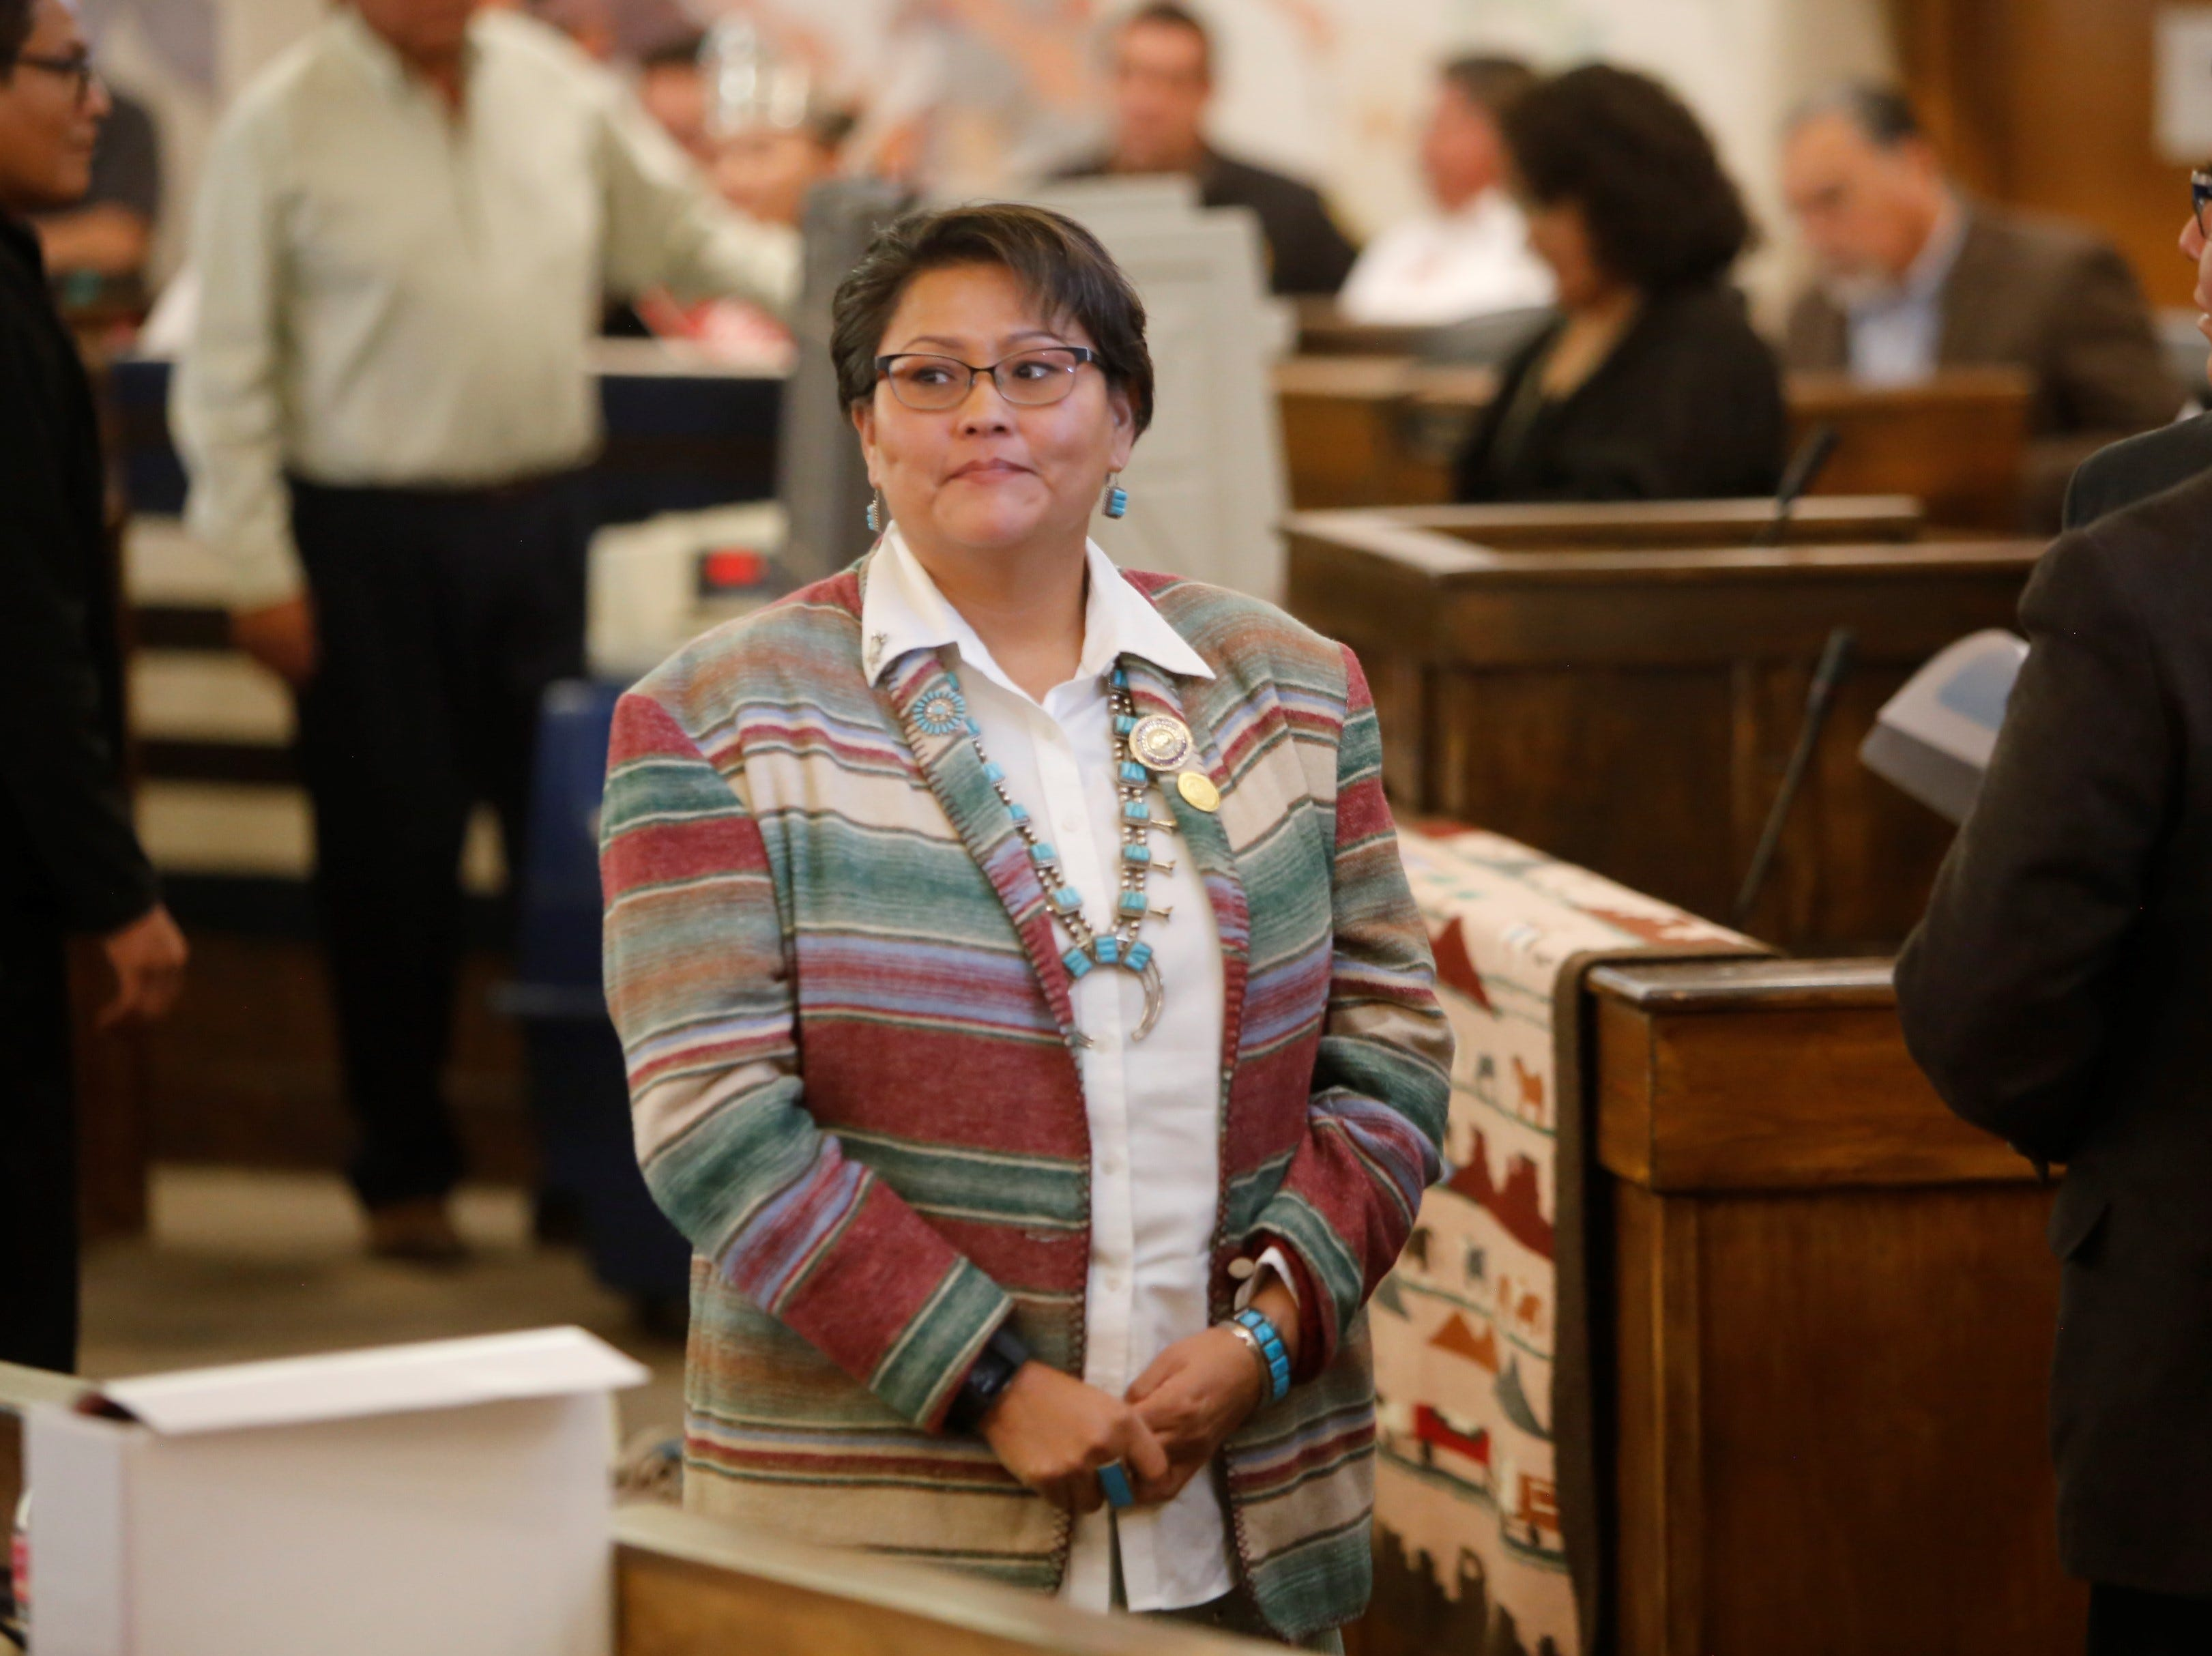 Delegate Eugenia Charles-Newton, who represents Shiprock Chapter, waits to vote for a speaker during the Navajo Nation Council's winter session on Monday in Window Rock, Ariz.